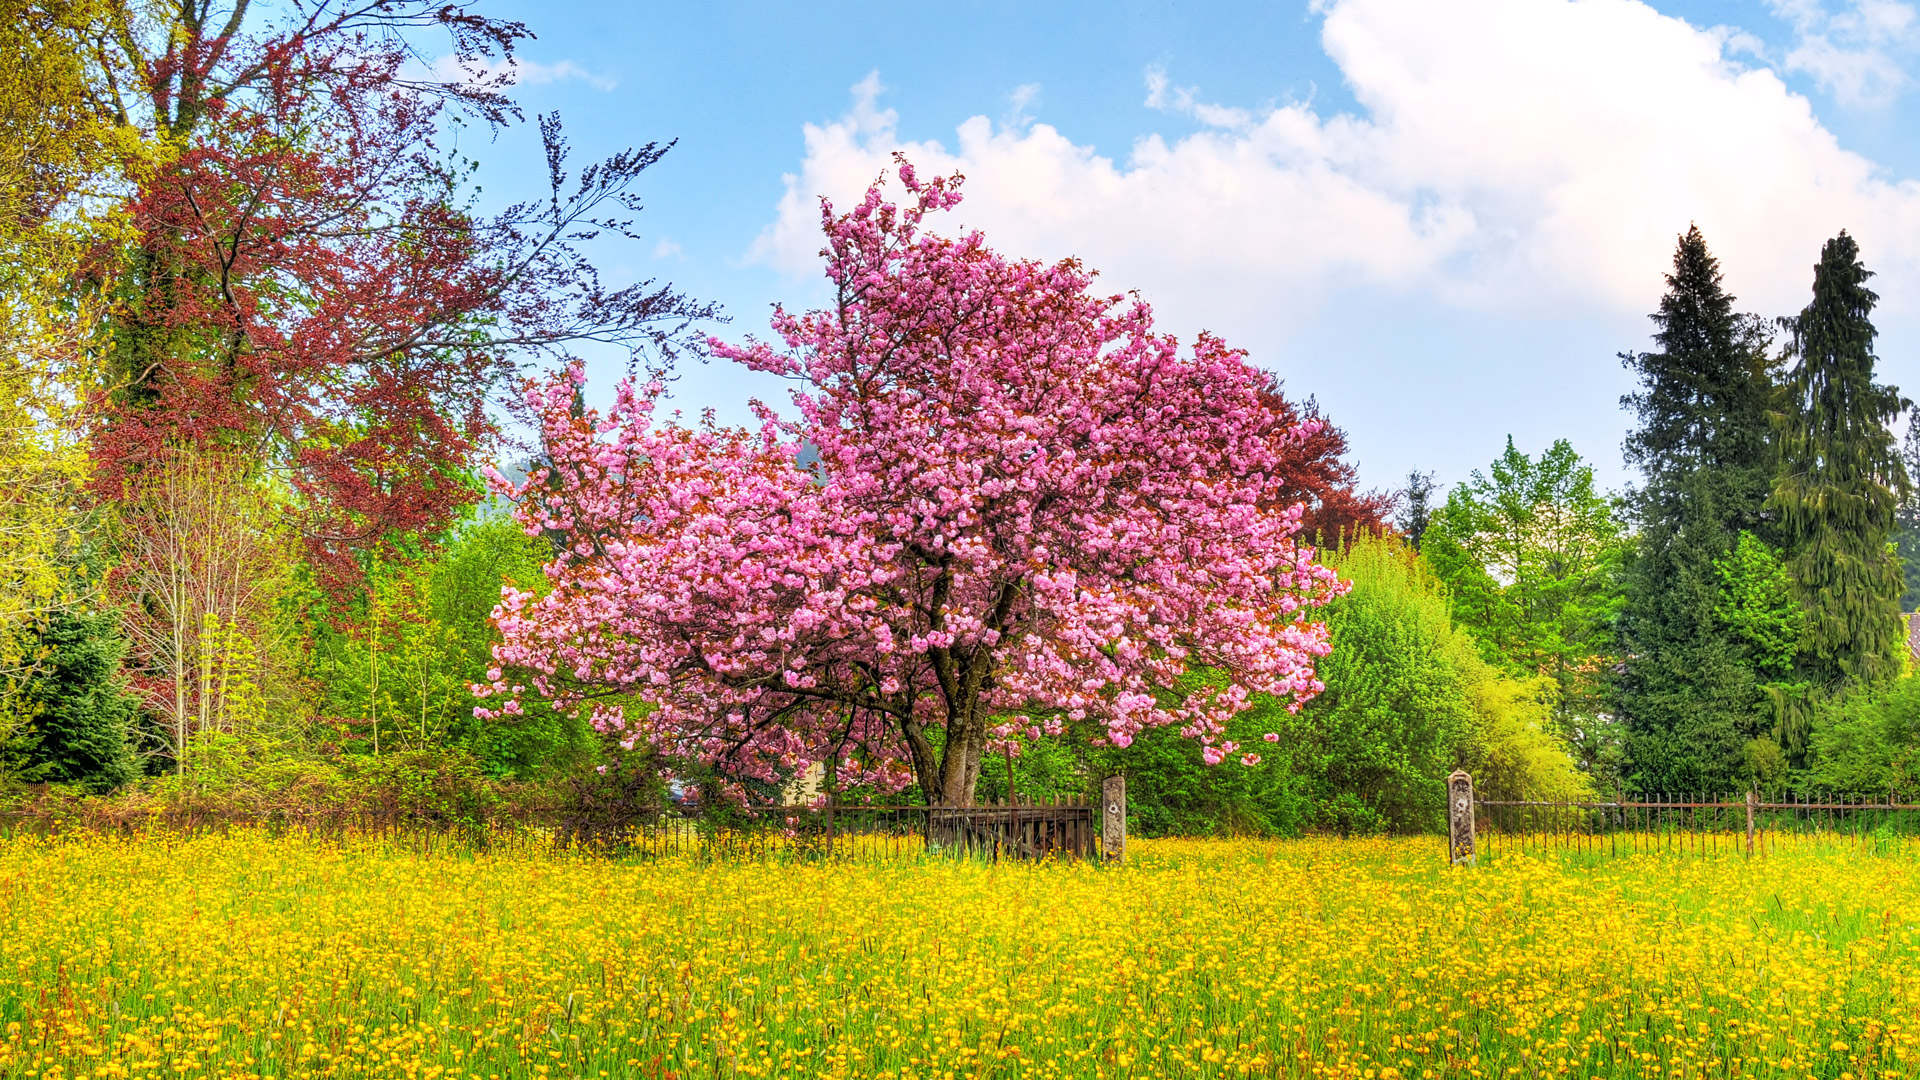 spring nature wallpapers 1080p - photo #4